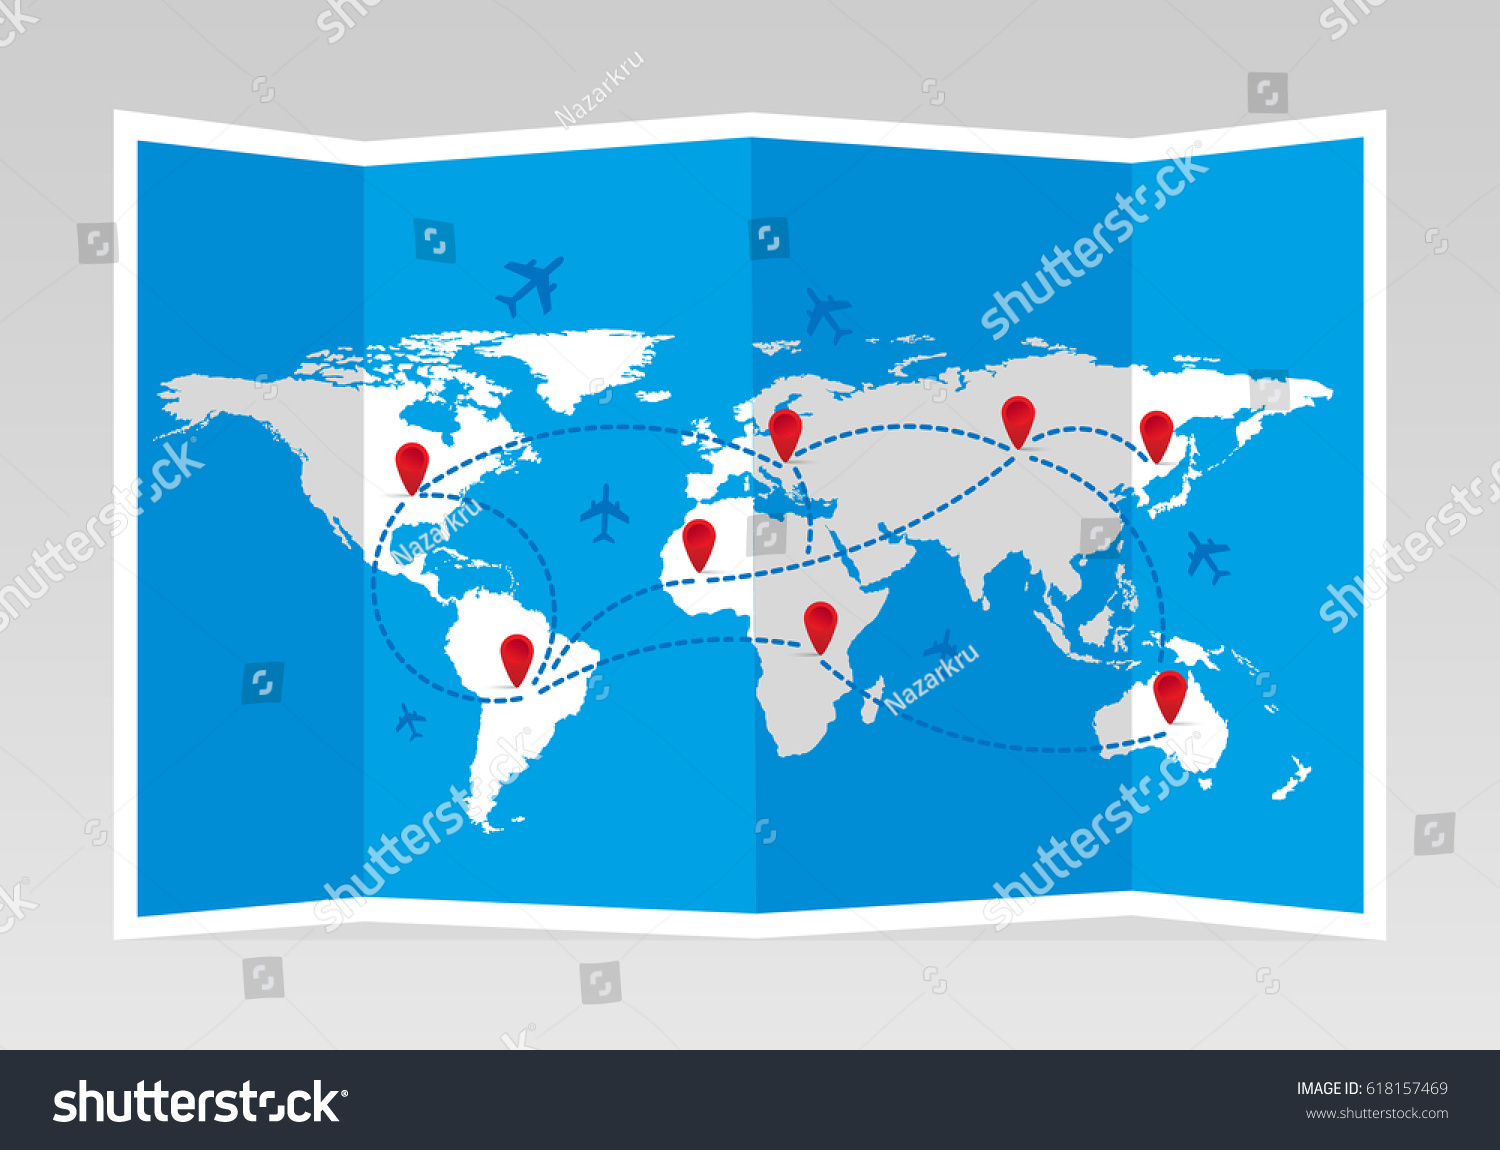 Folded world map airplanes markers travel stock vector 618157469 folded world map with airplanes and markers travel and tourism vector illustration gumiabroncs Choice Image